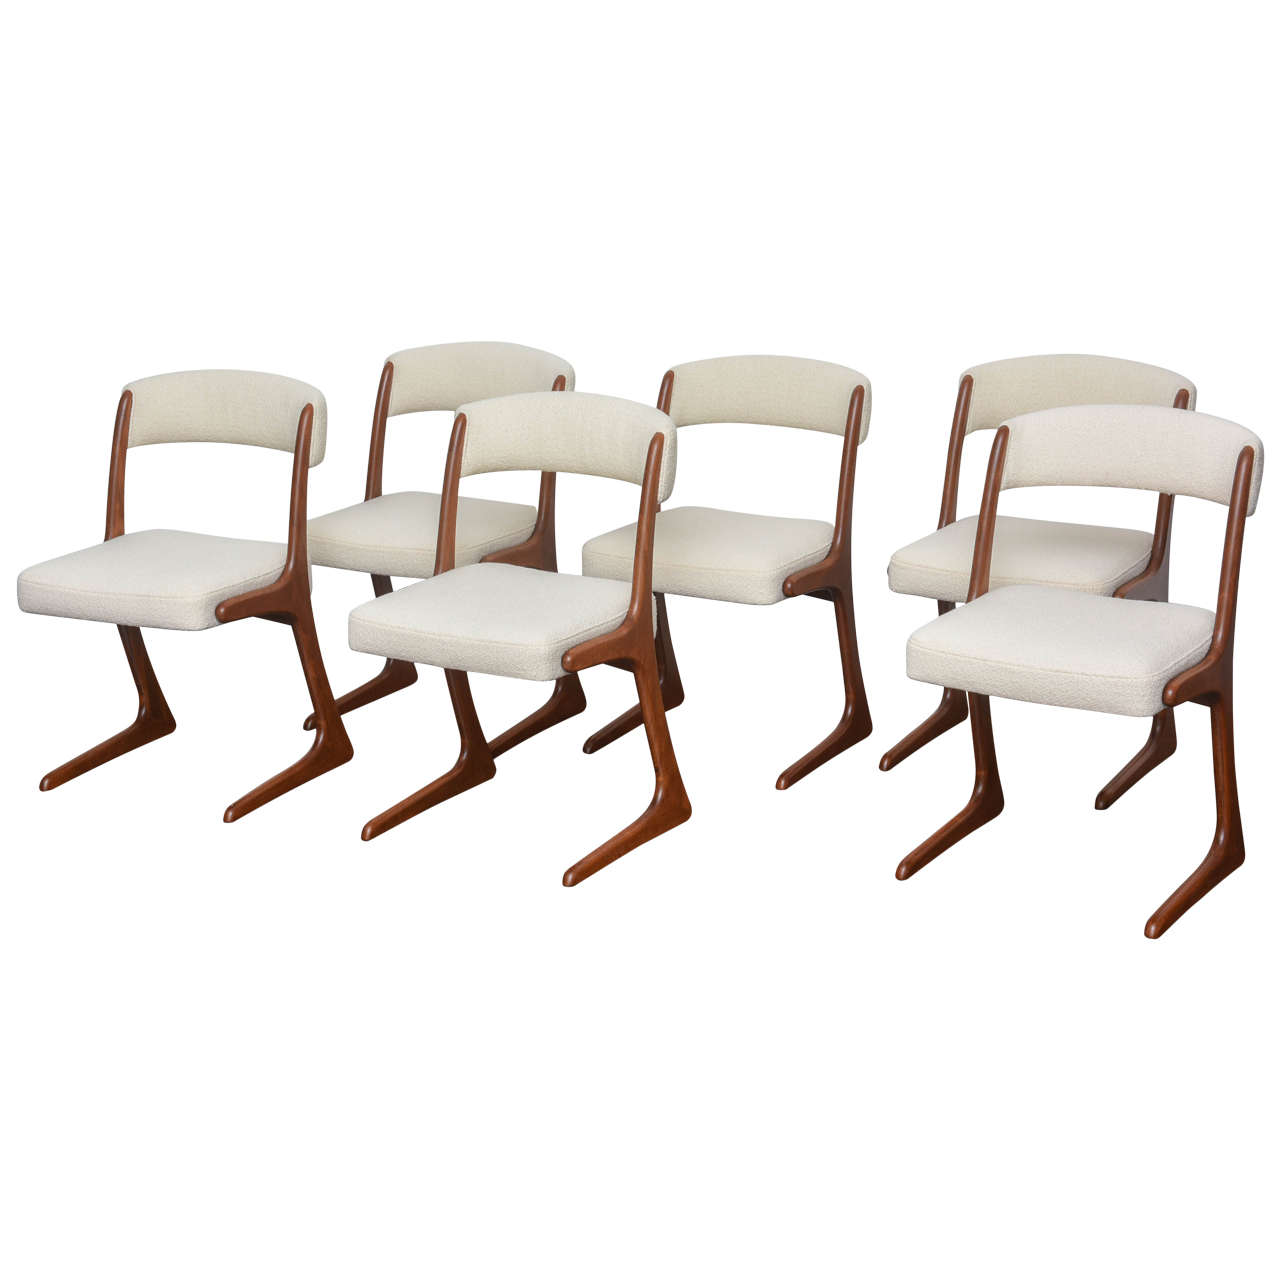 1960s french walnut dining chairs at 1stdibs